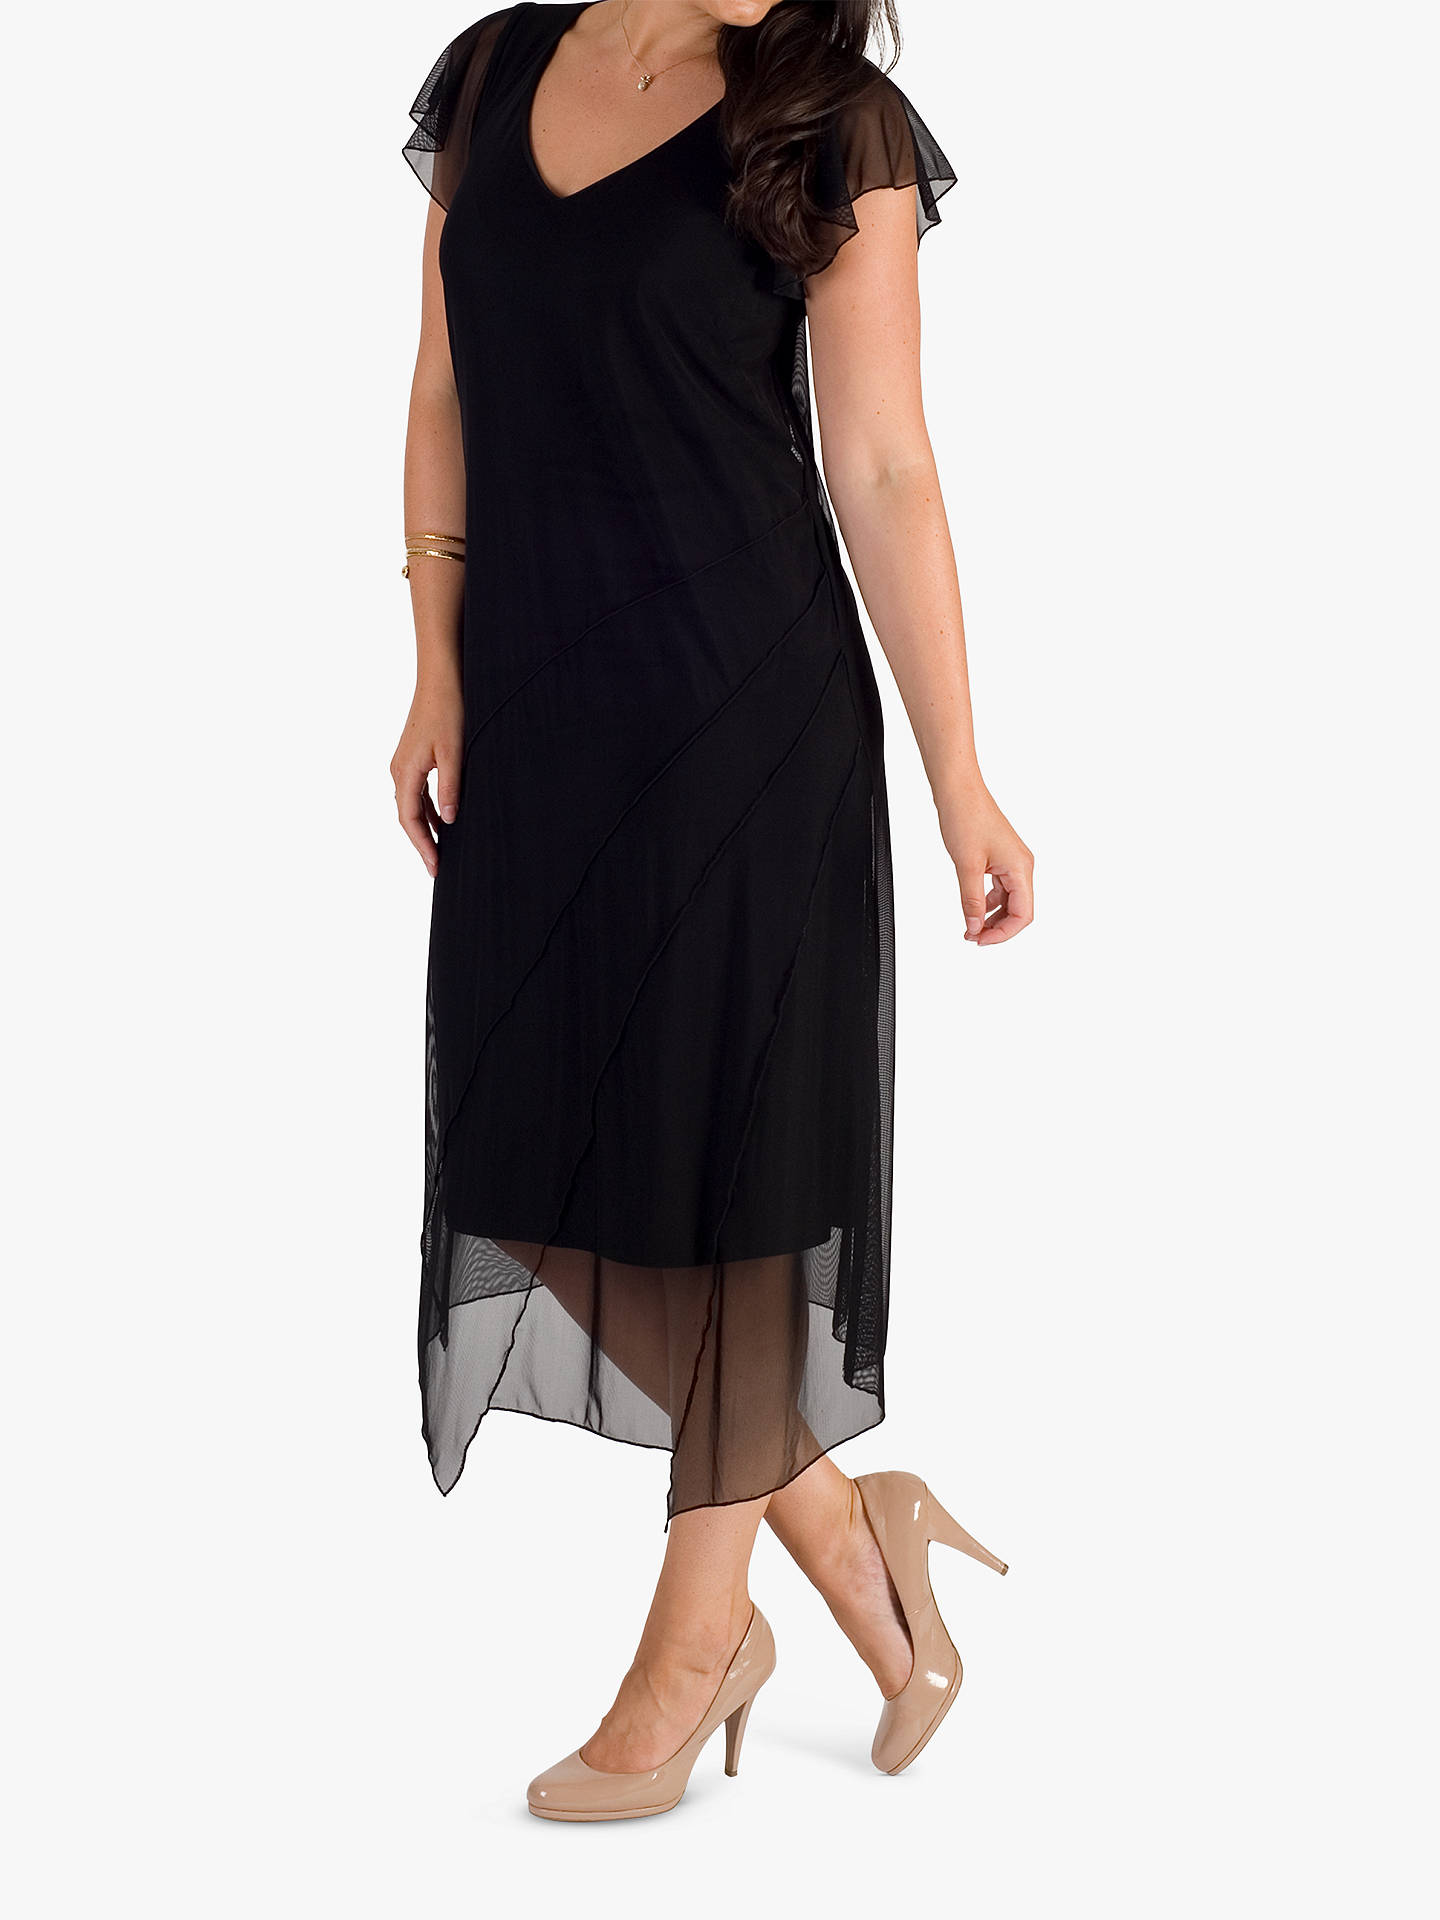 BuyChesca Asymmetric Hem & Seam Detail Mesh Dress, Black, 12 Online at johnlewis.com